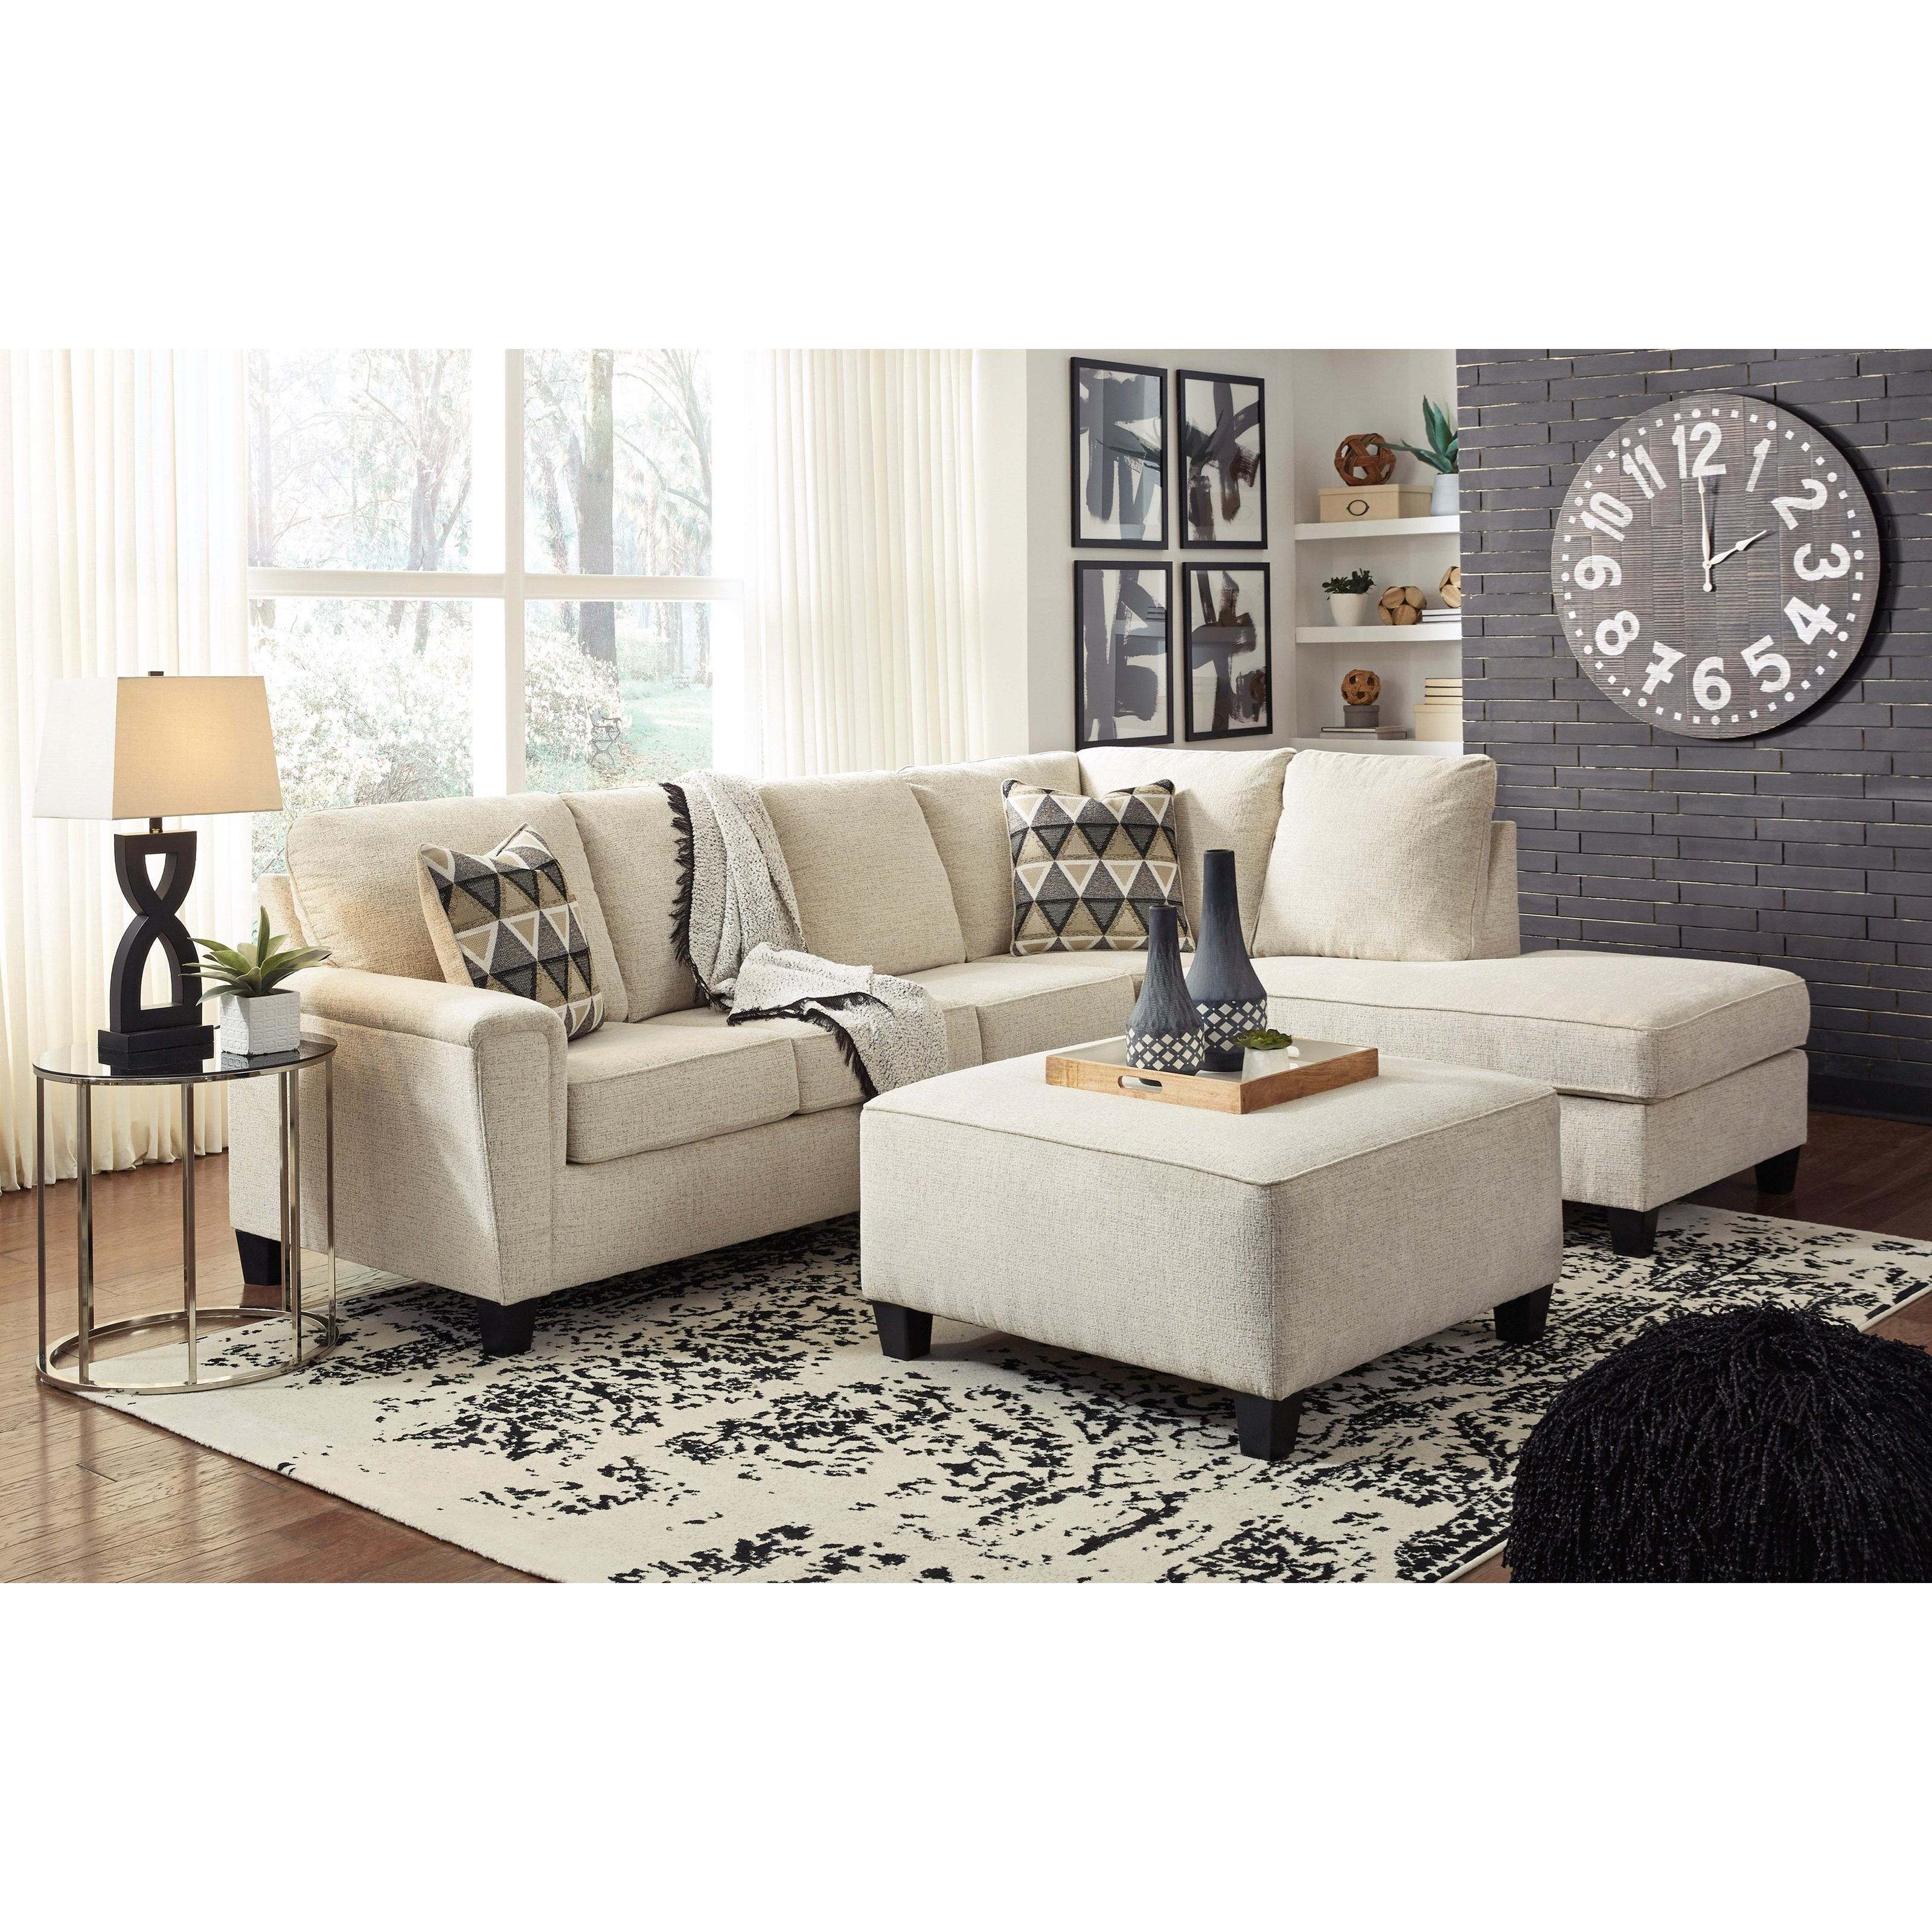 Abinger Living Room Group by Signature Design by Ashley at Pilgrim Furniture City